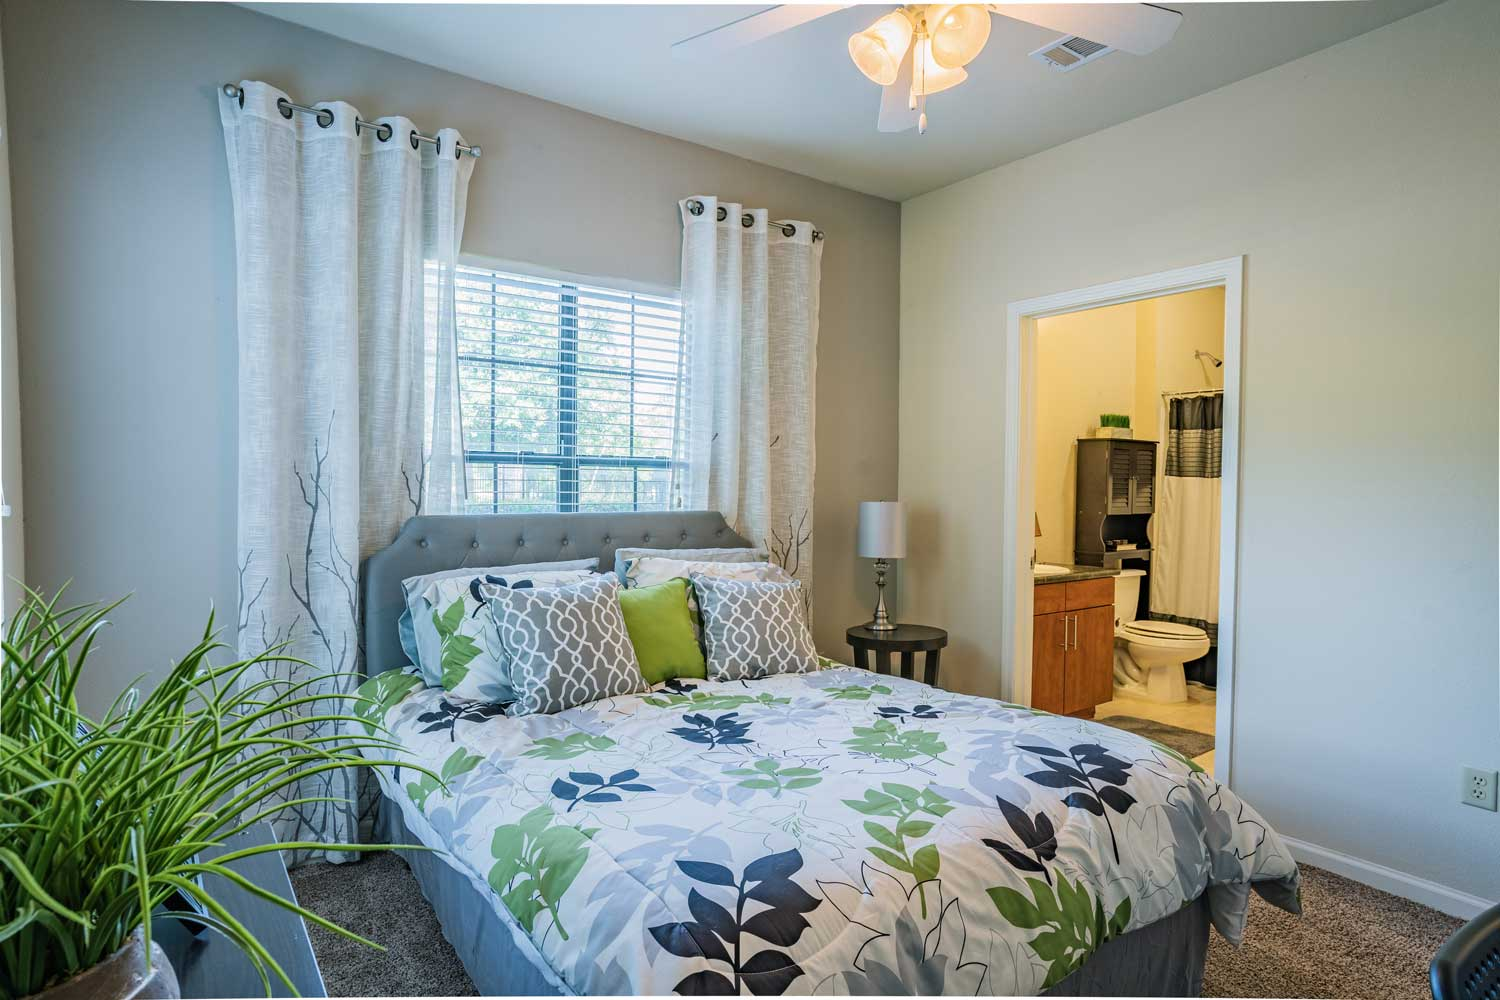 Stylish Ceiling Fans at Tech Ridge Apartments in Austin, TX